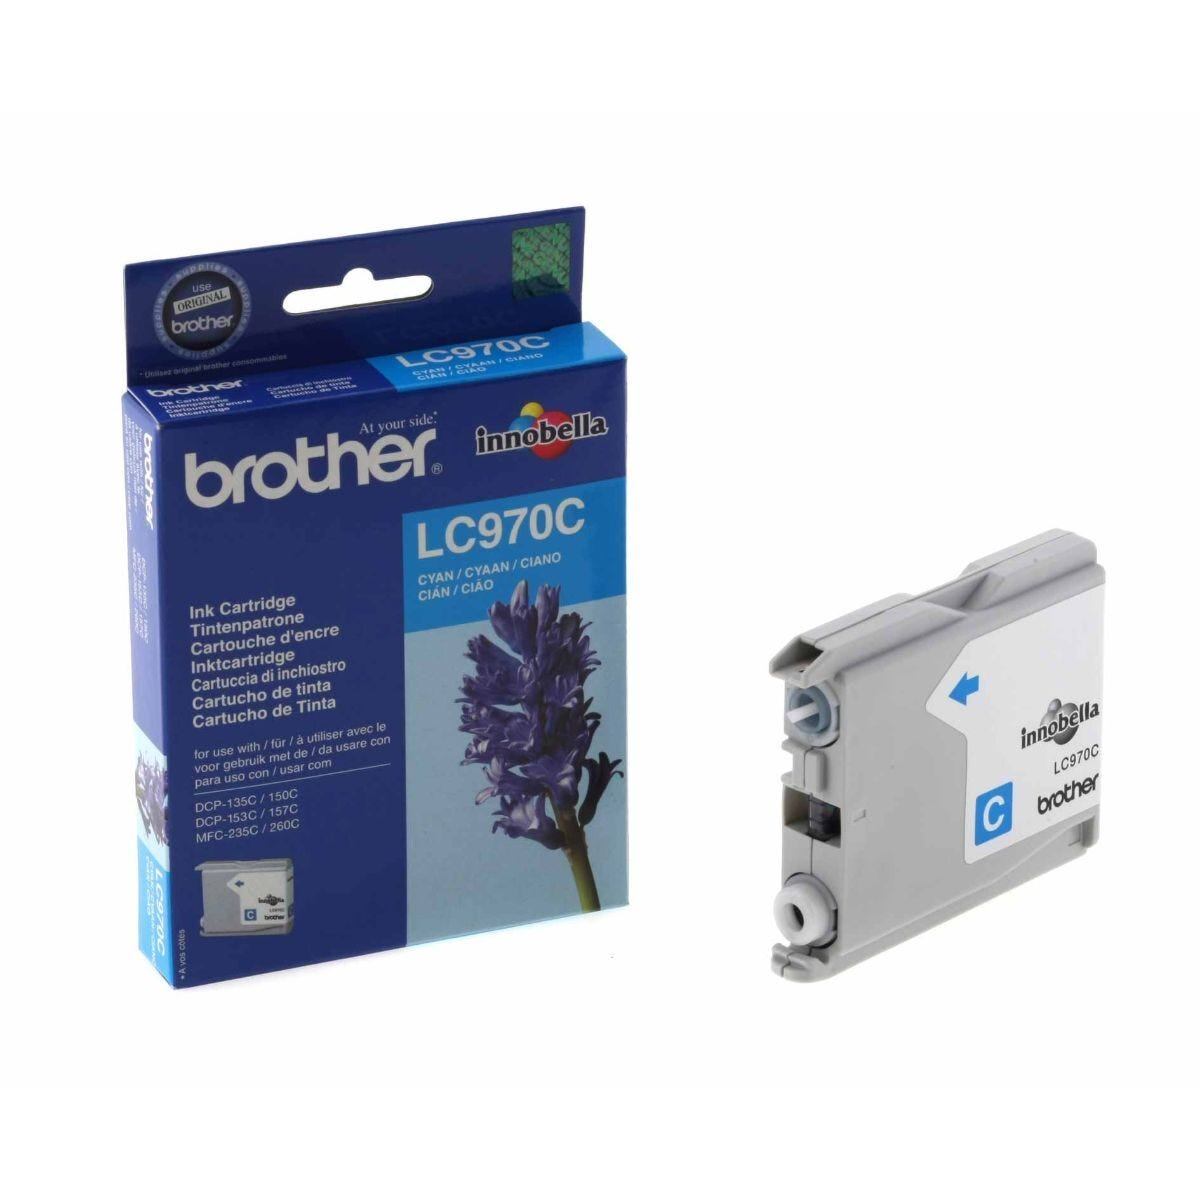 Brother LC970C Ink Cartridge